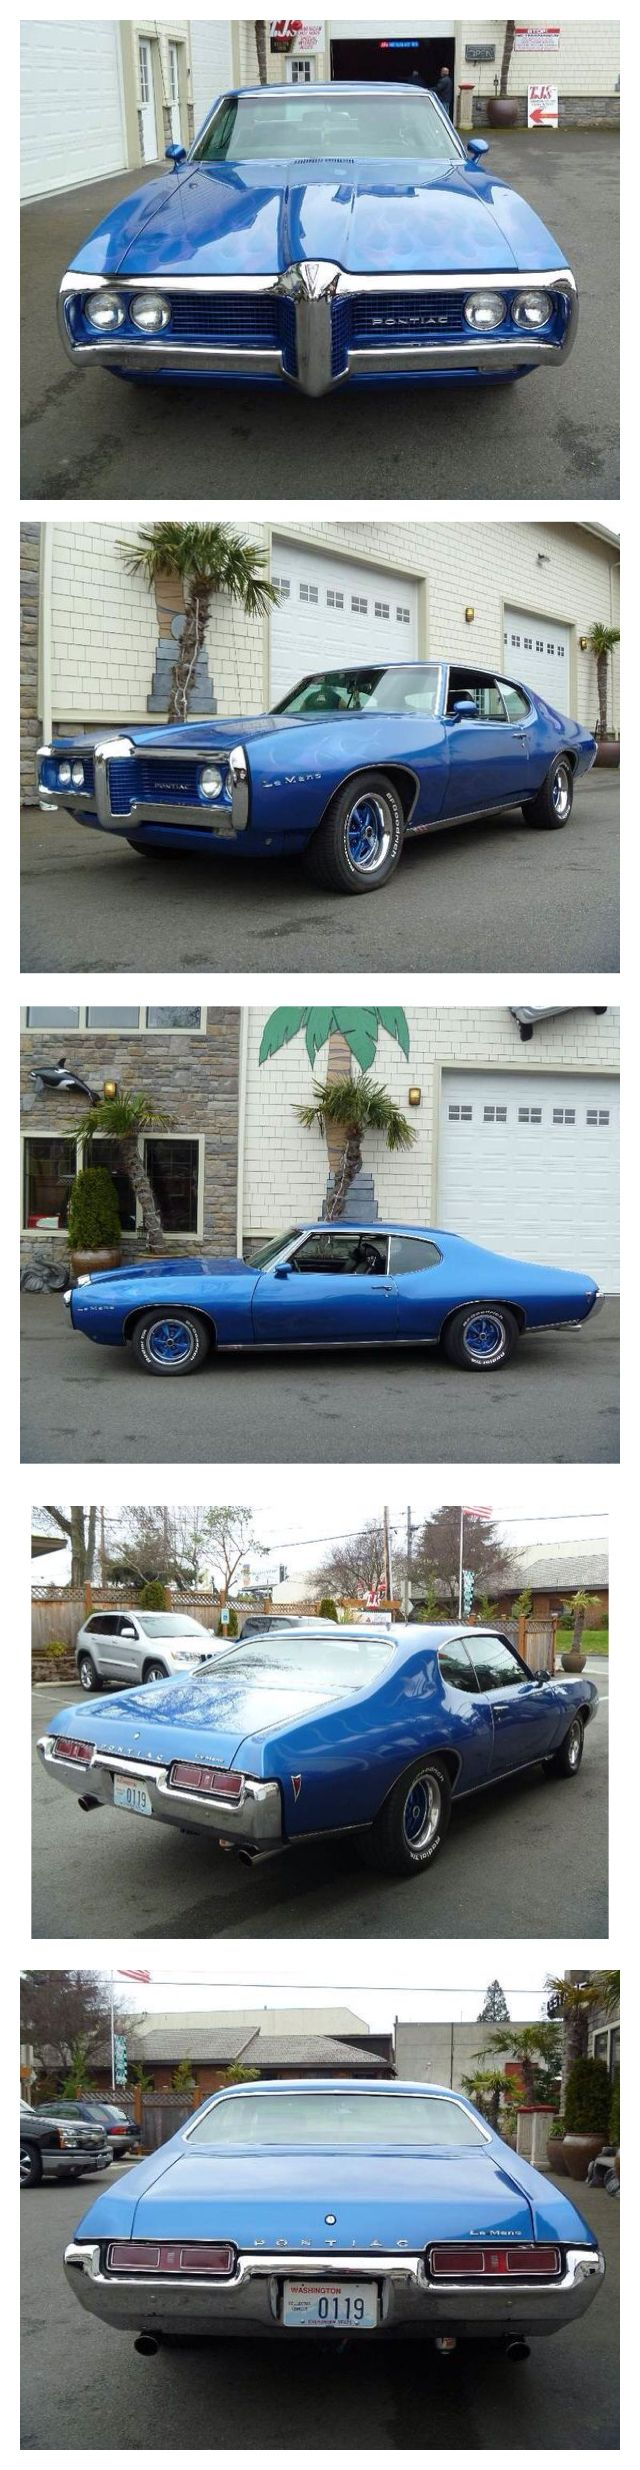 1969 Pontiac Lemans..Re-pin brought to you by agents of #Carinsurance at #HouseofInsurance in Eugene, Oregon